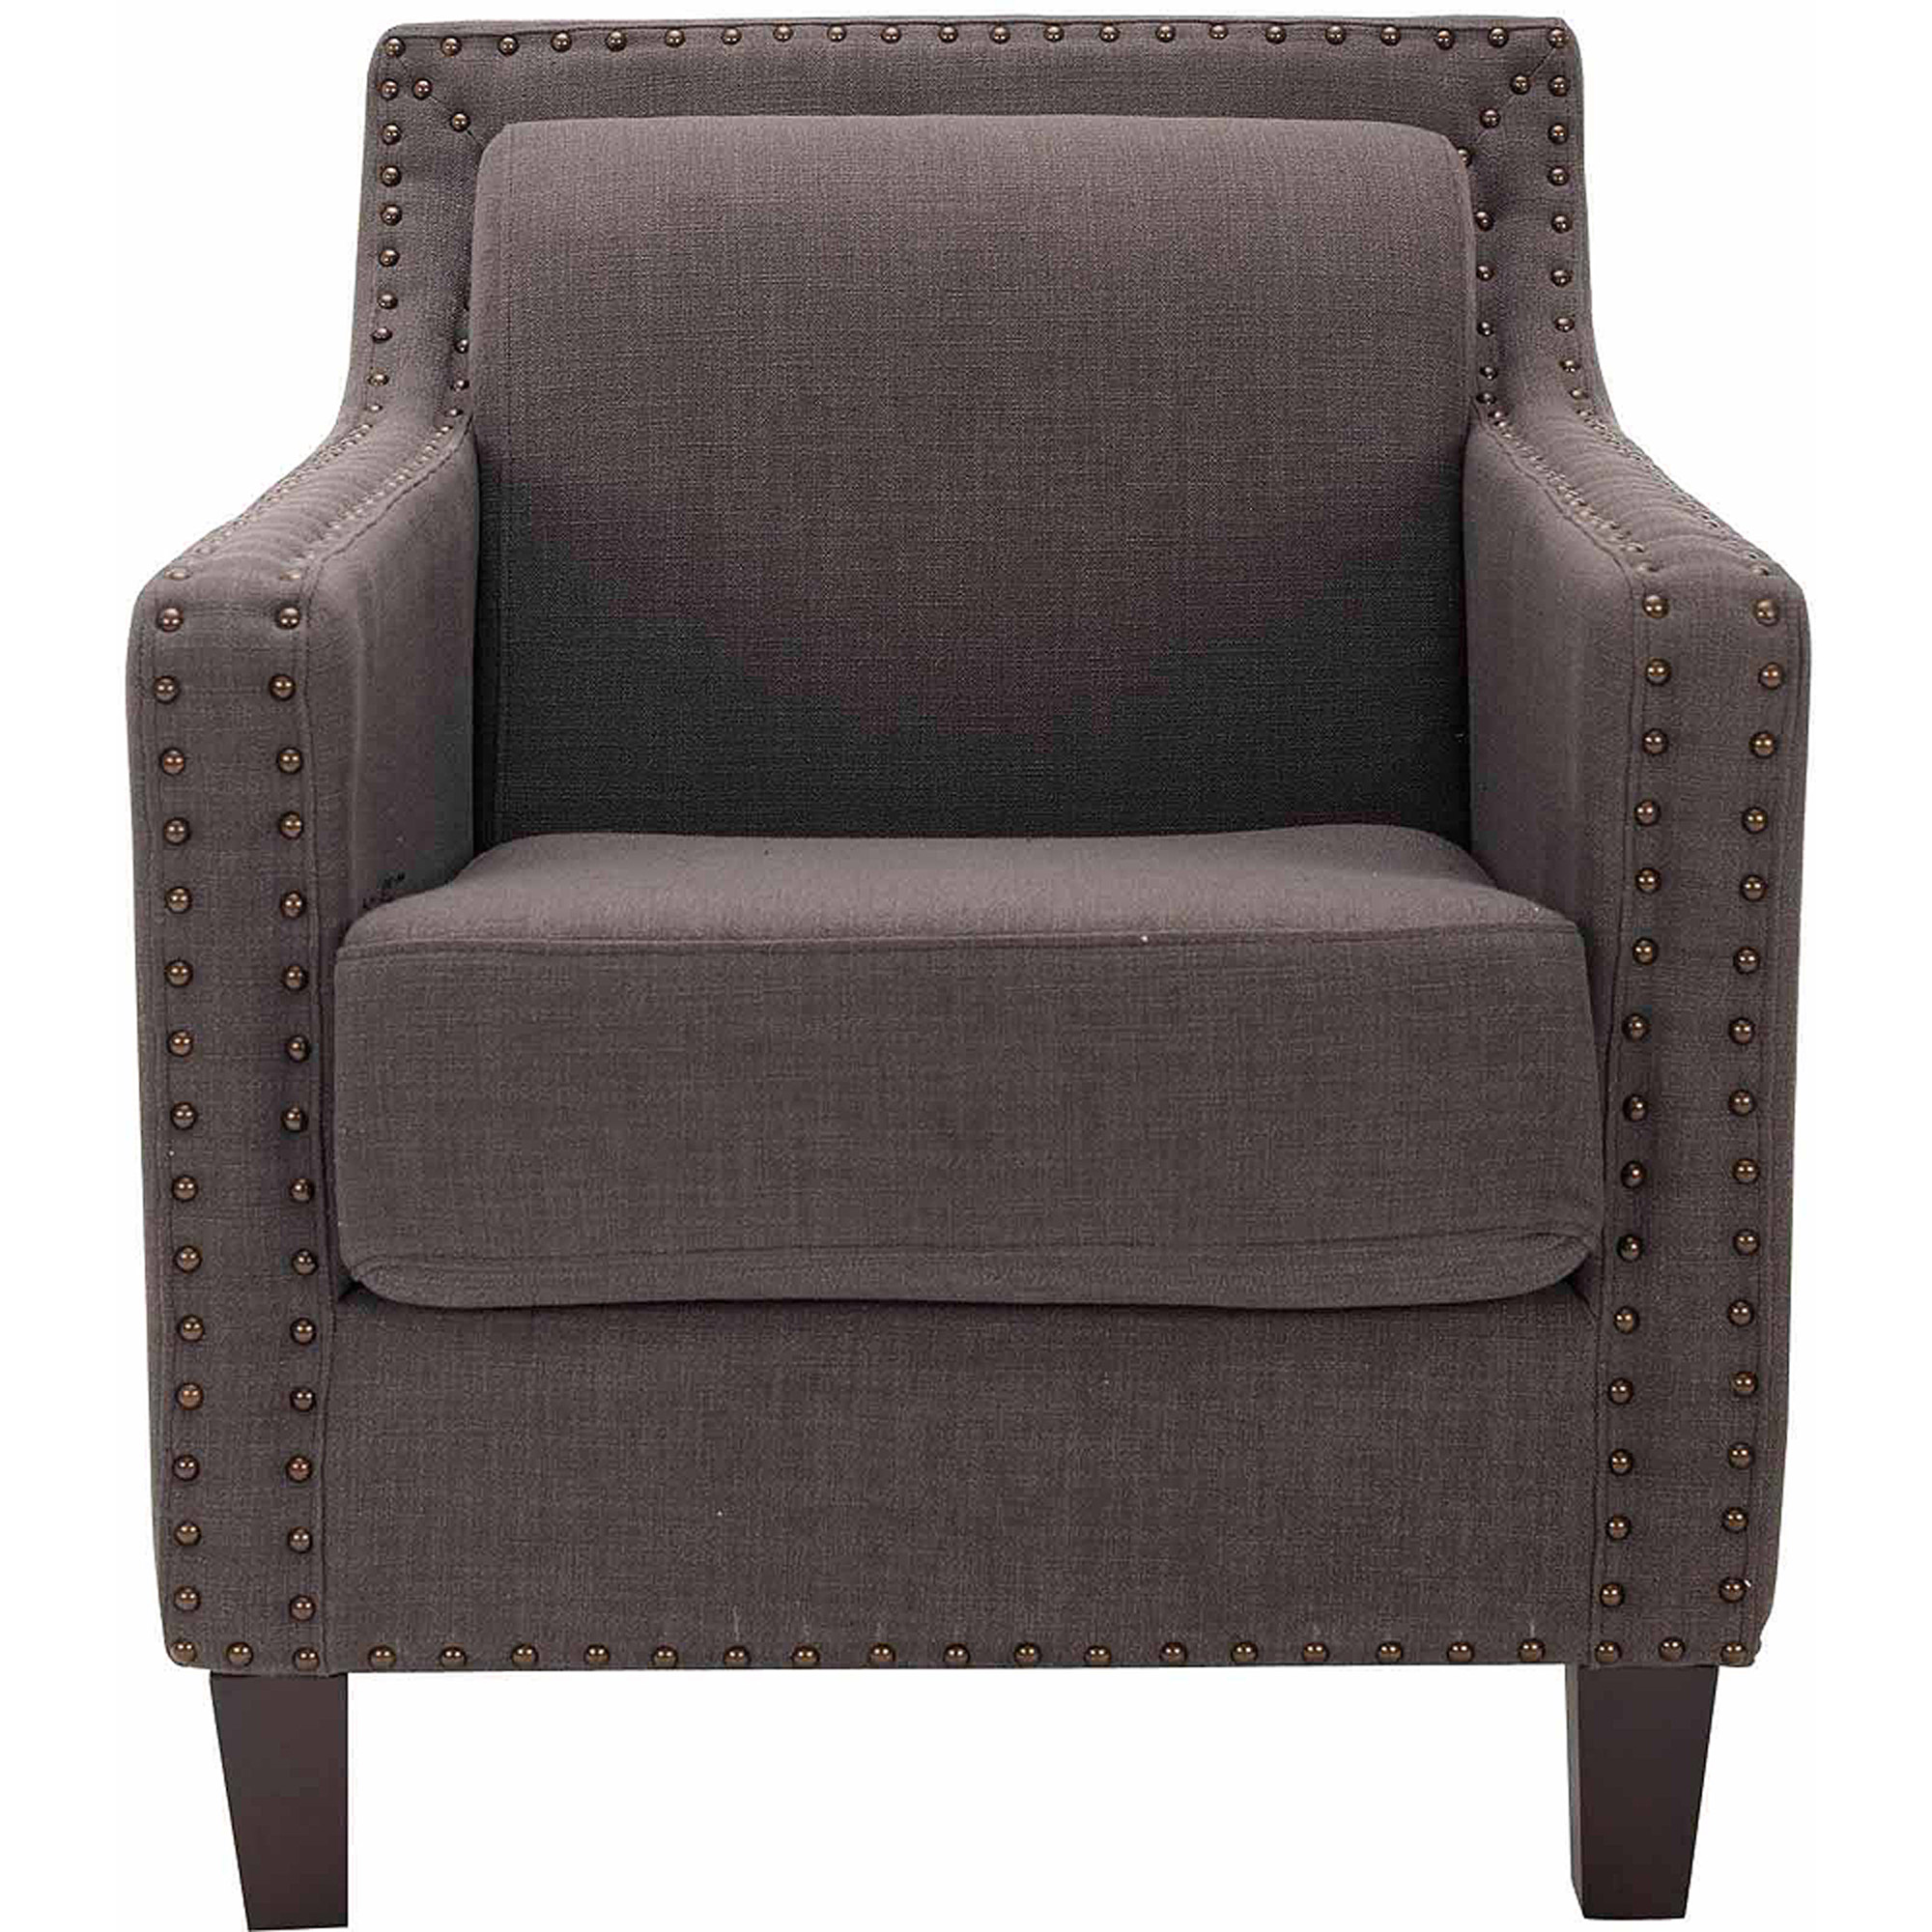 Safavieh Charles George Arm Chair, Multiple Colors